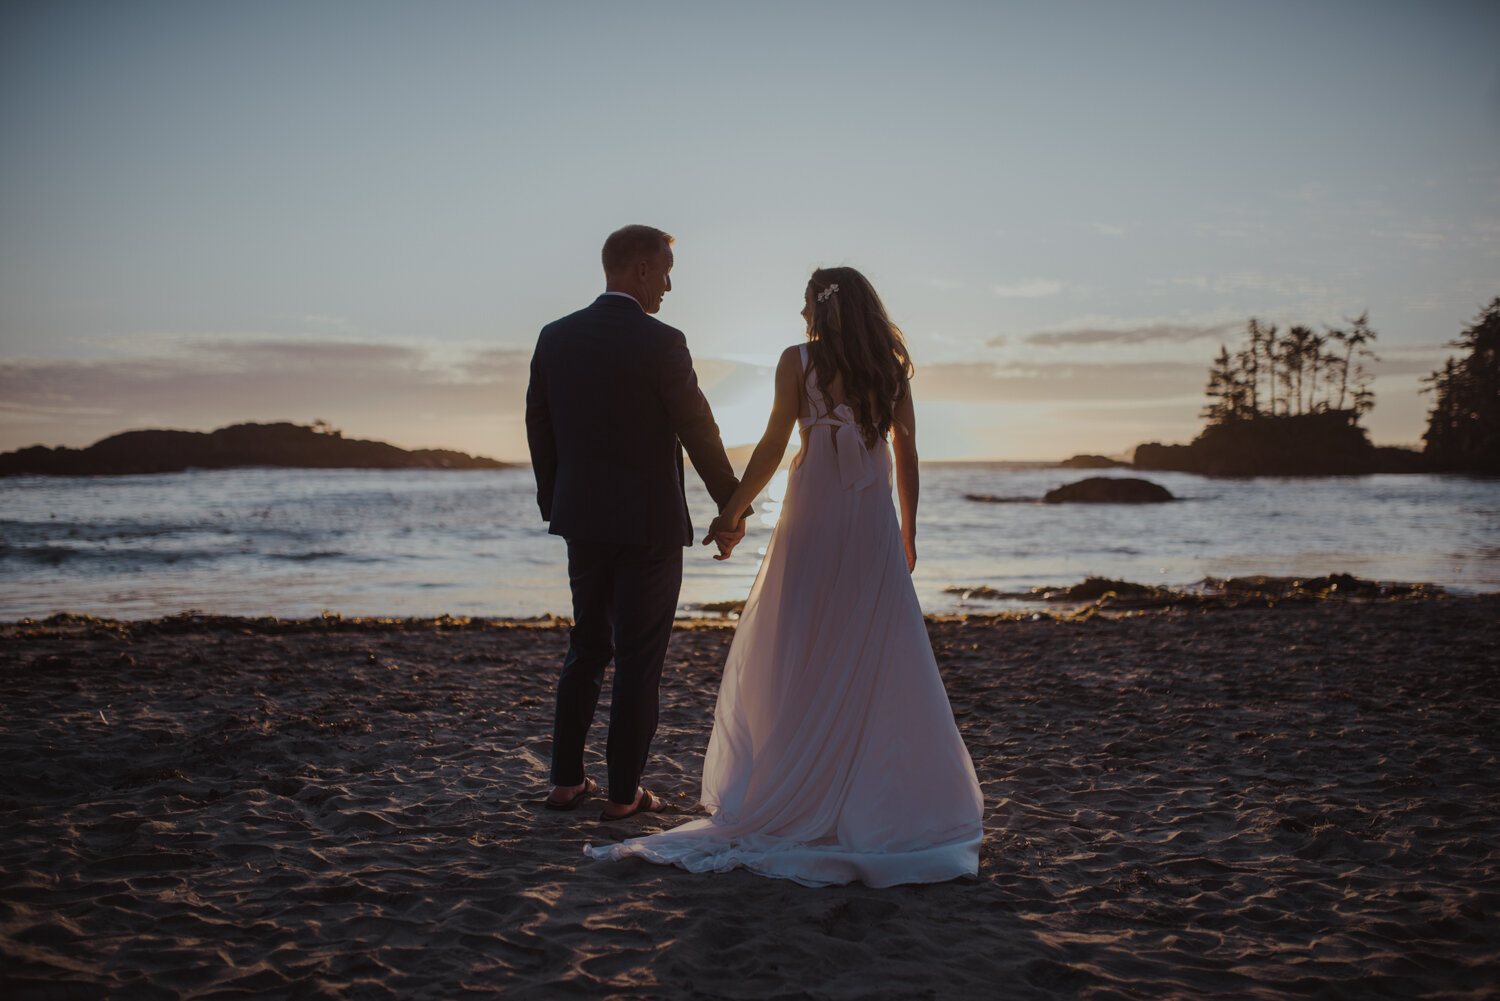 Ucluelet-Wya-Point-Wedding-Owen-Imaging-56.jpg